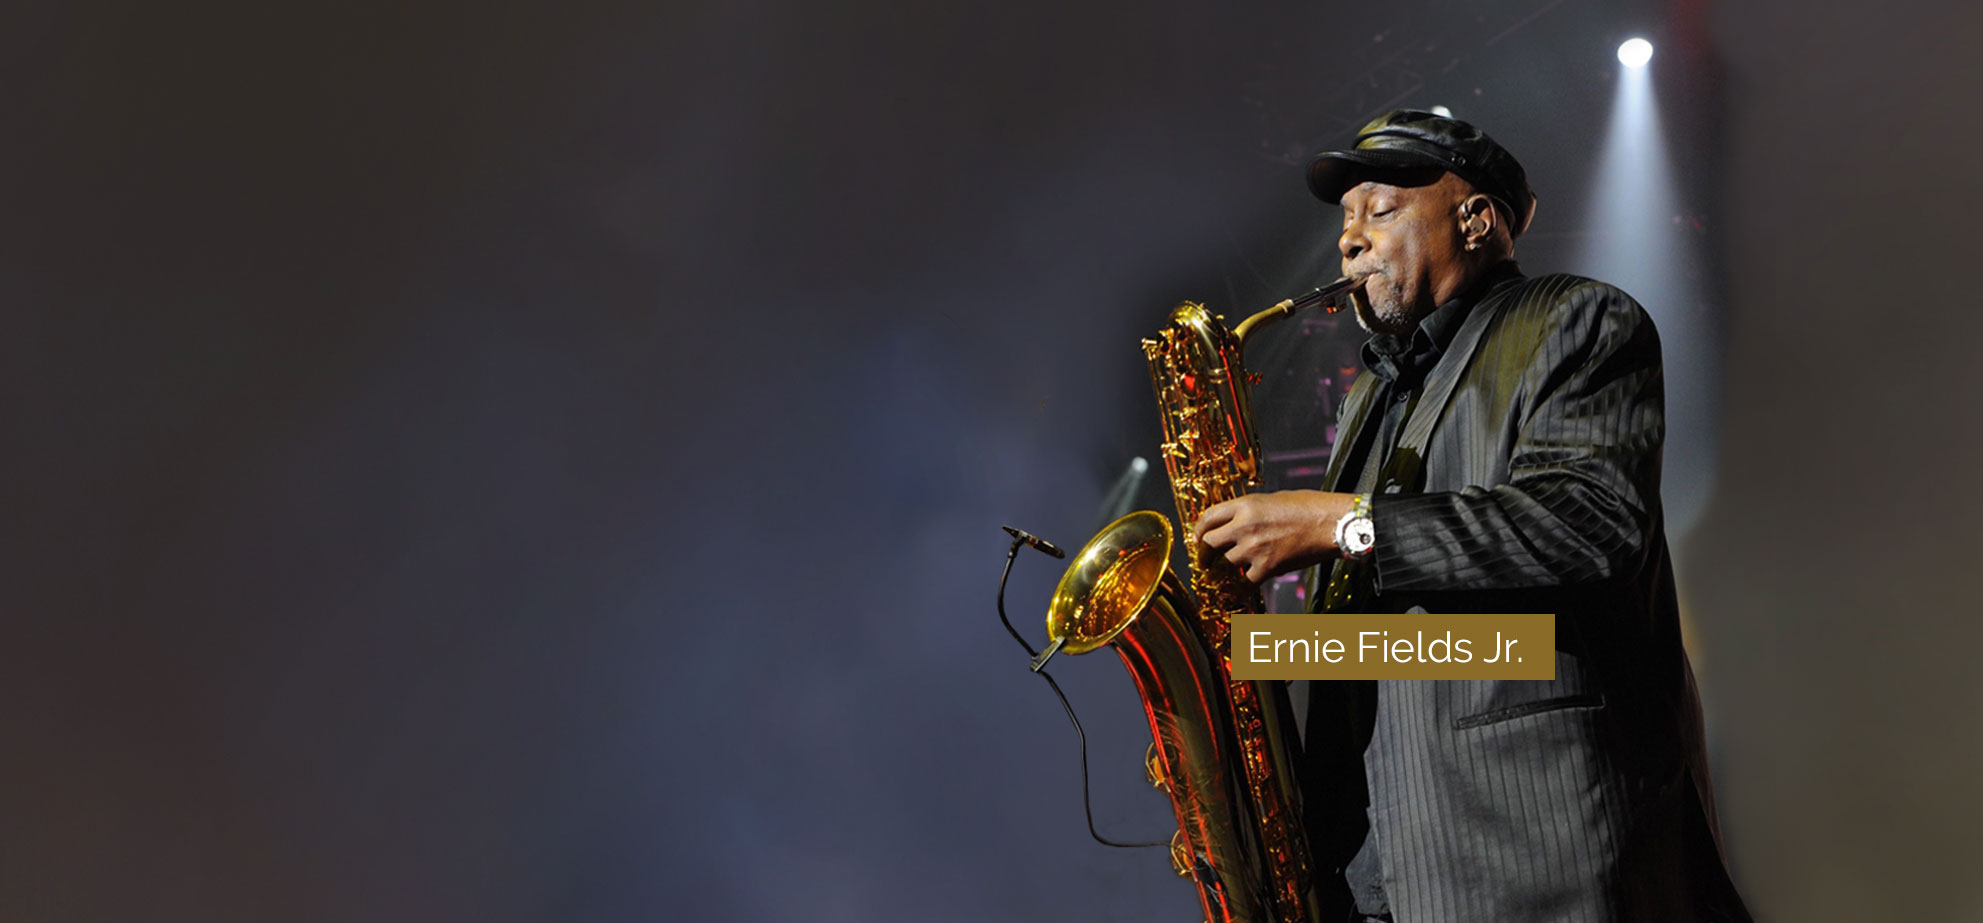 Ernie Fields Jr. performing with Saxophone